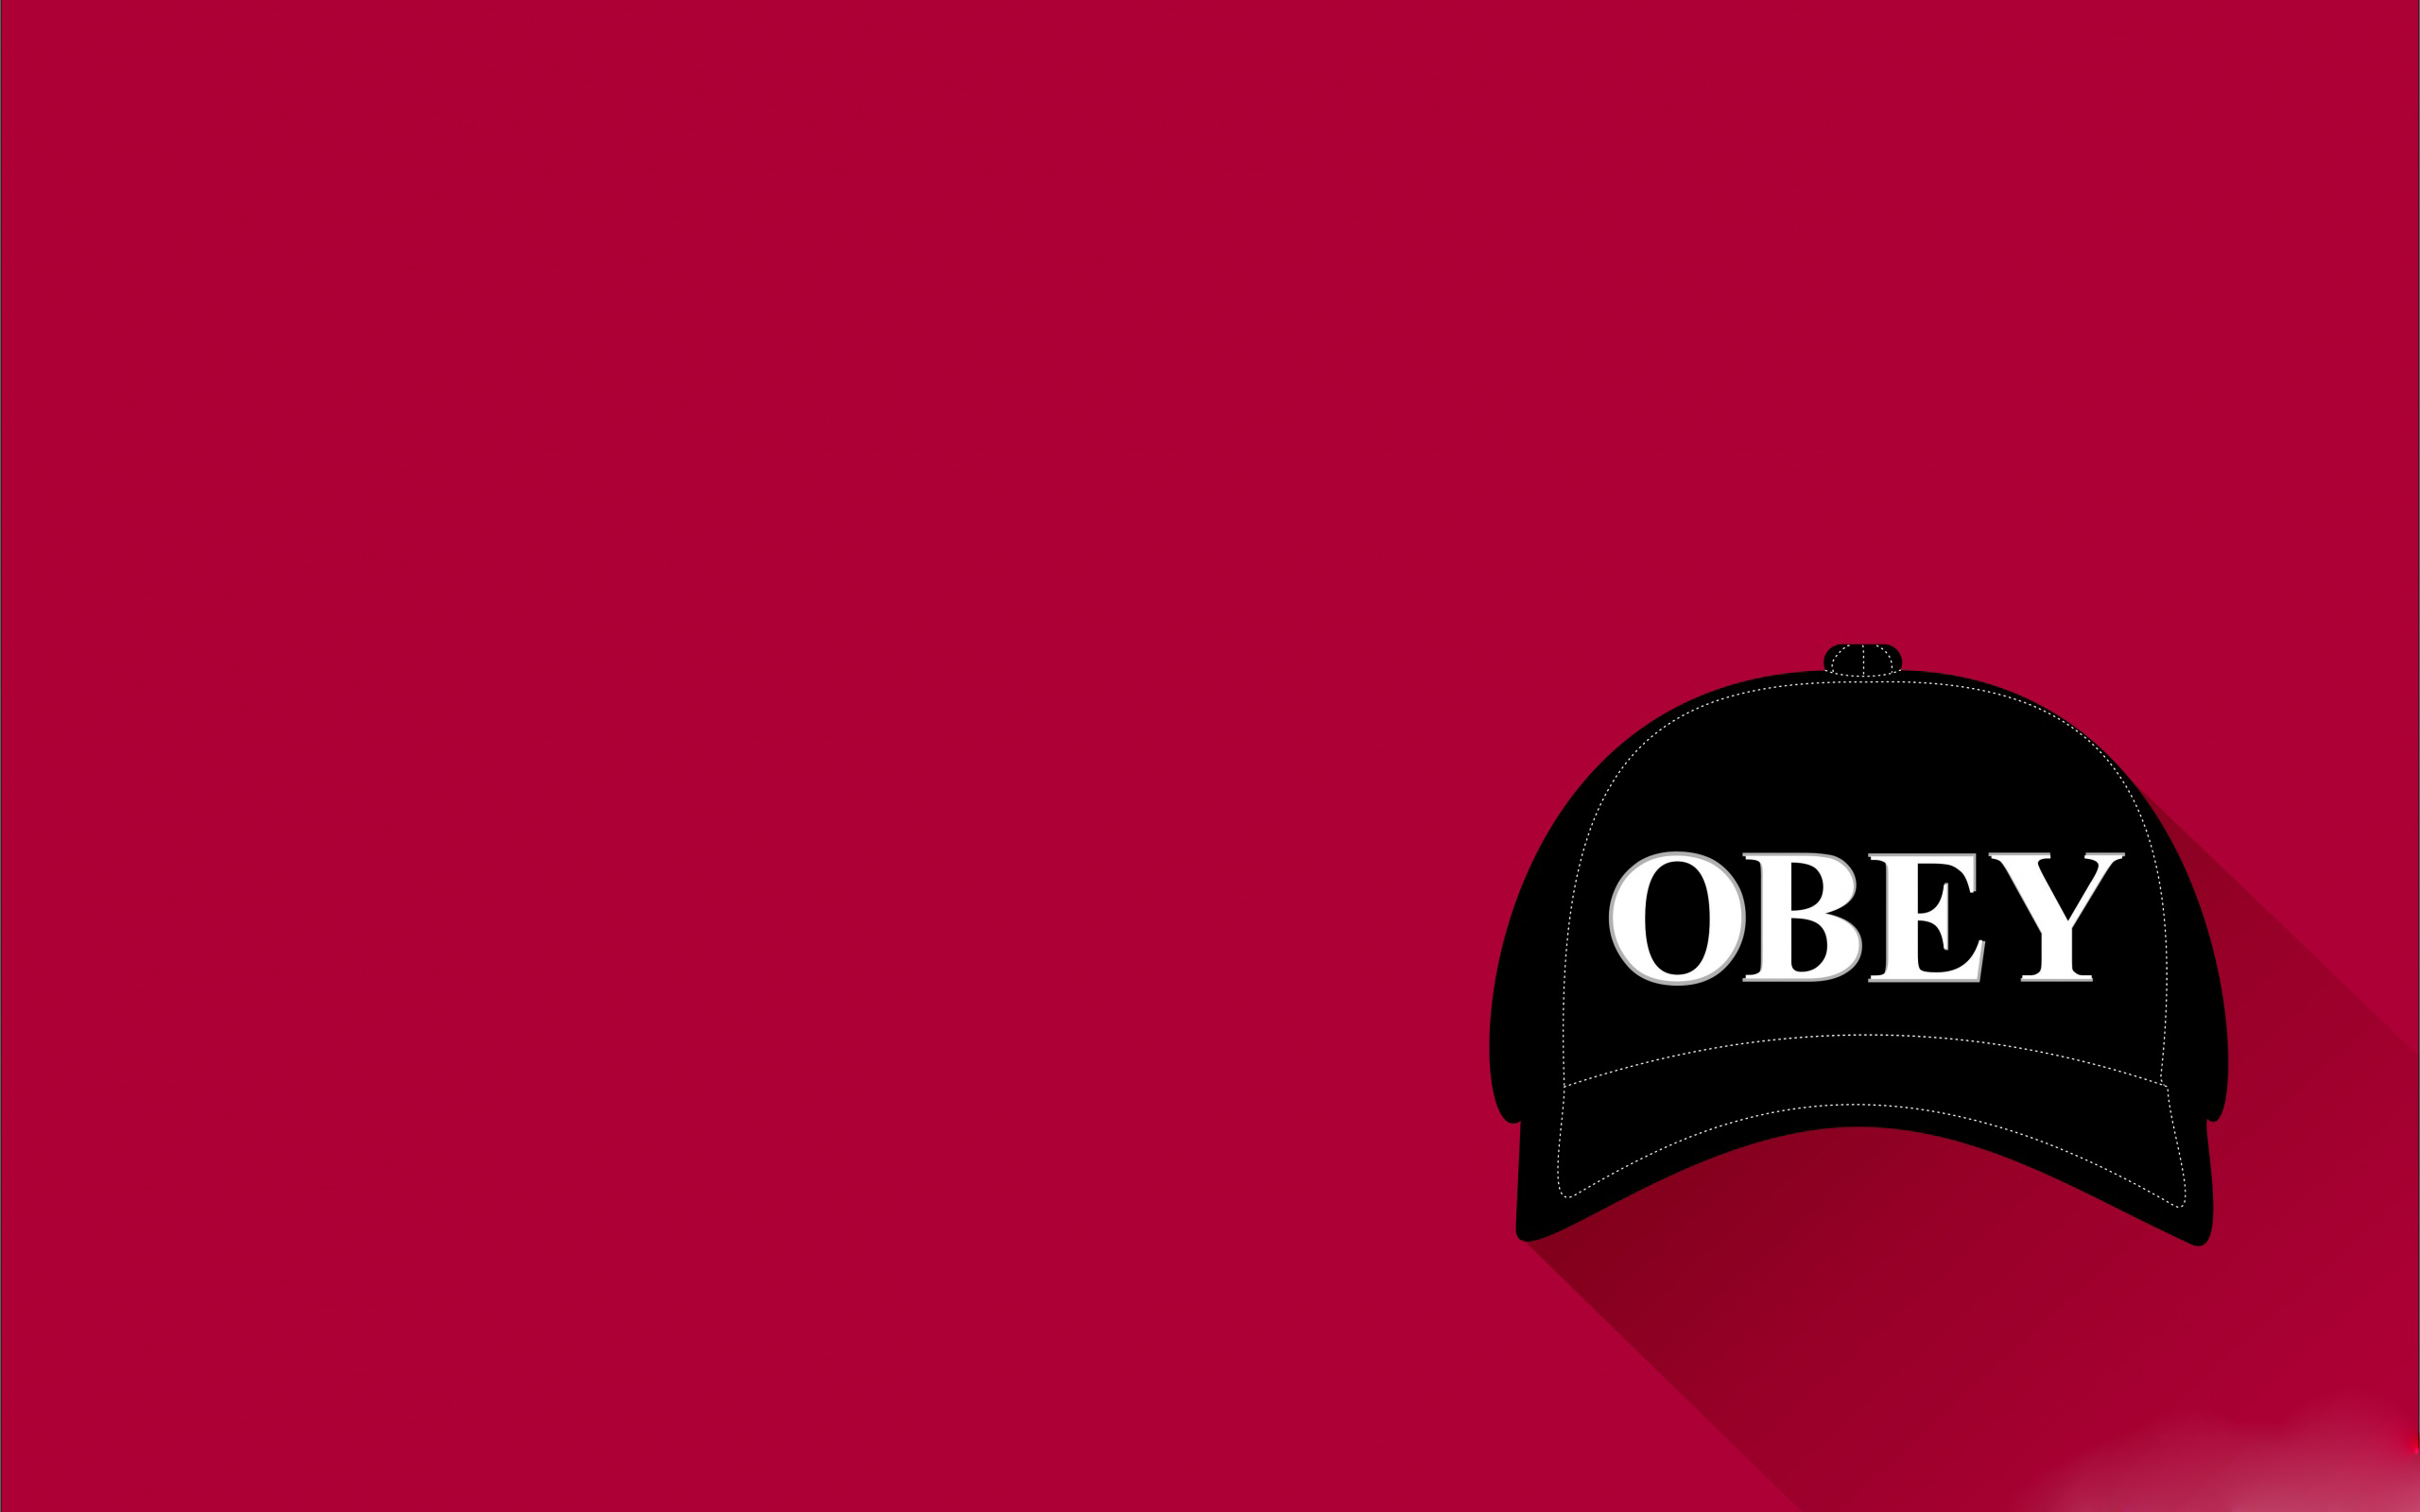 Obey Wallpapers High Quality